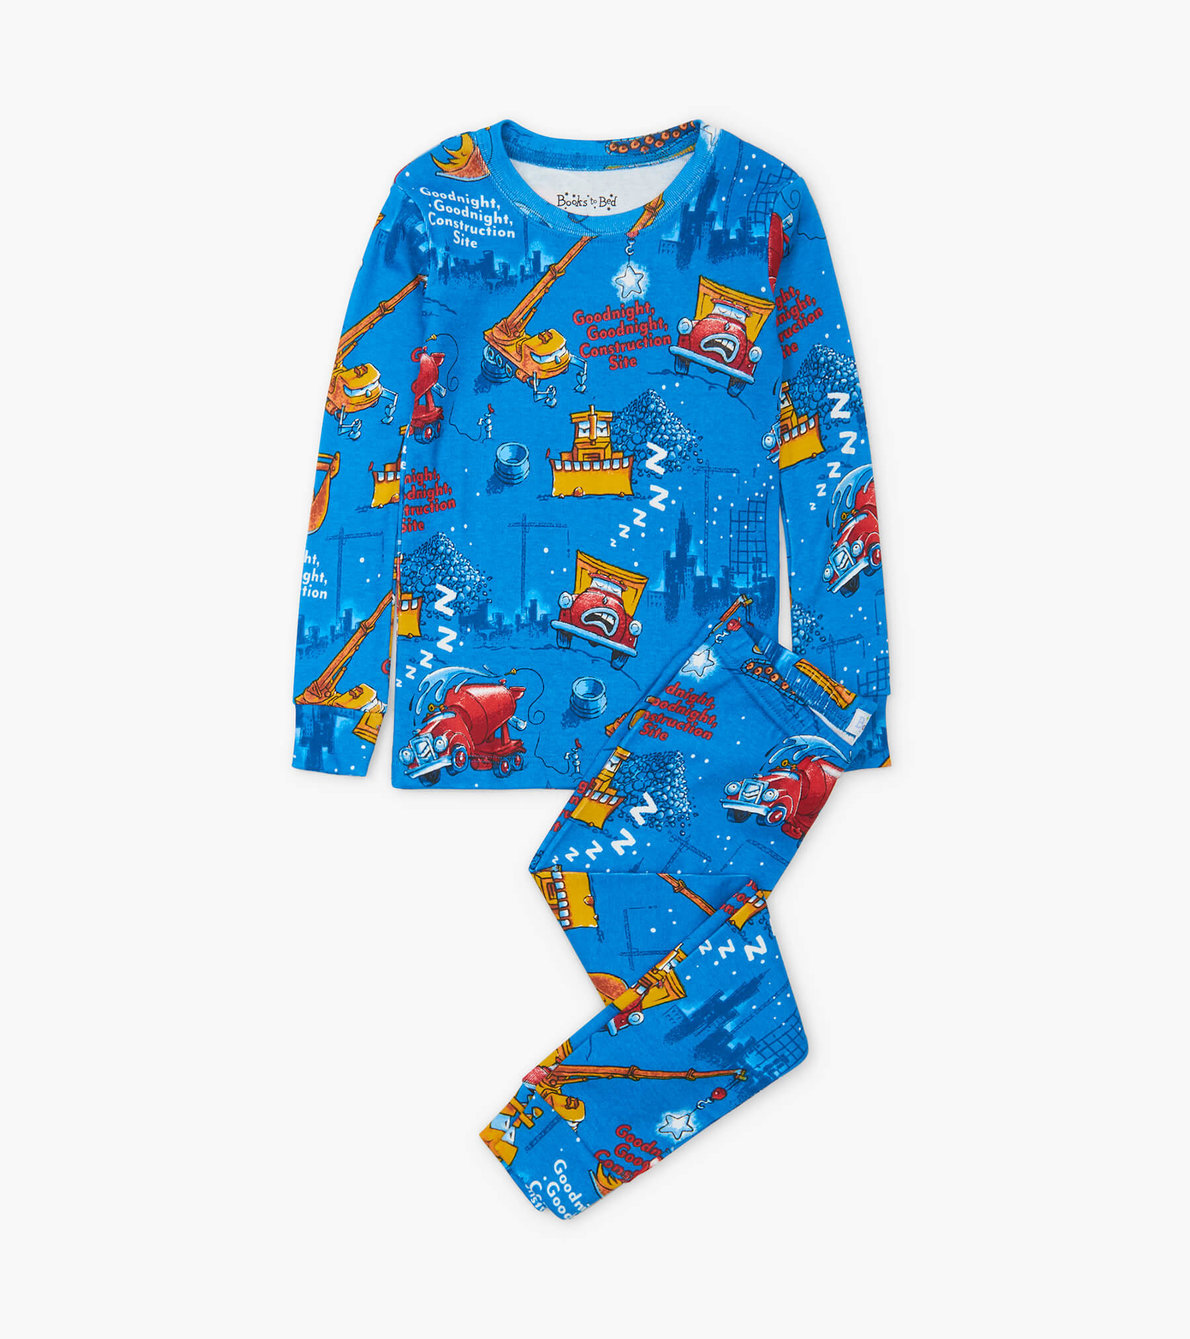 View larger image of Goodnight, Goodnight, Construction Site Pajama Set